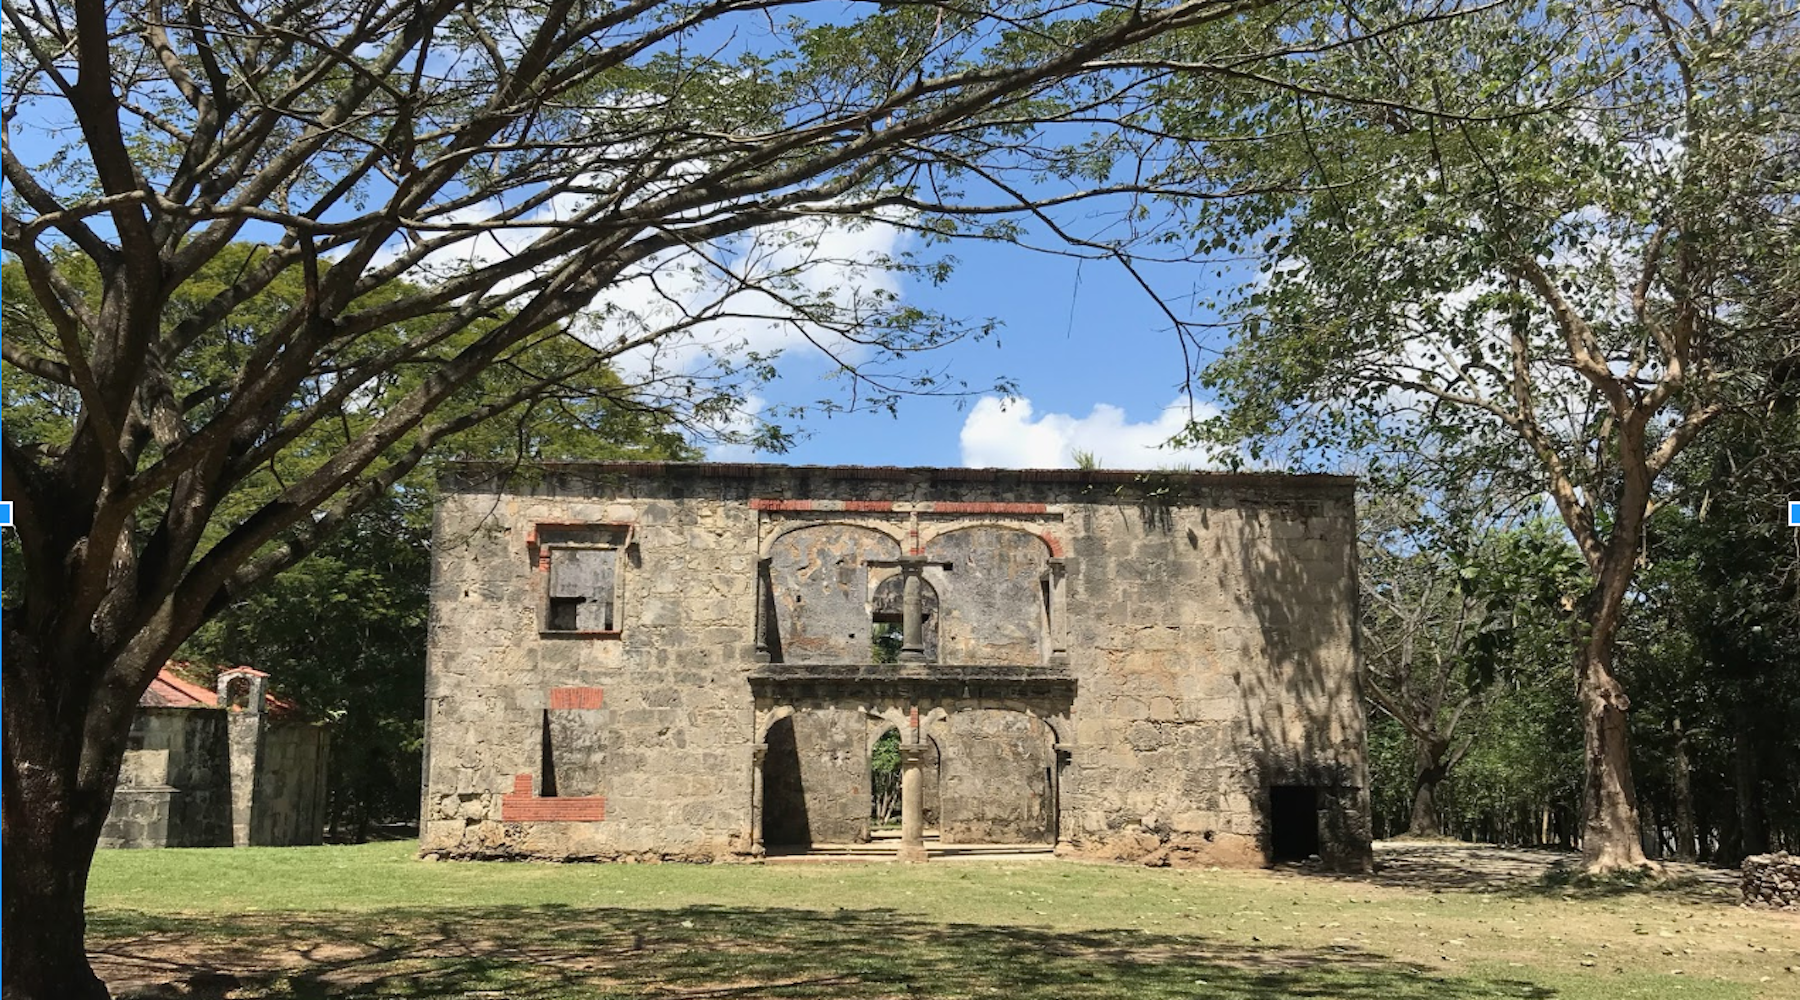 Building in the Dominican Republic that used to be Slaves Quarters.